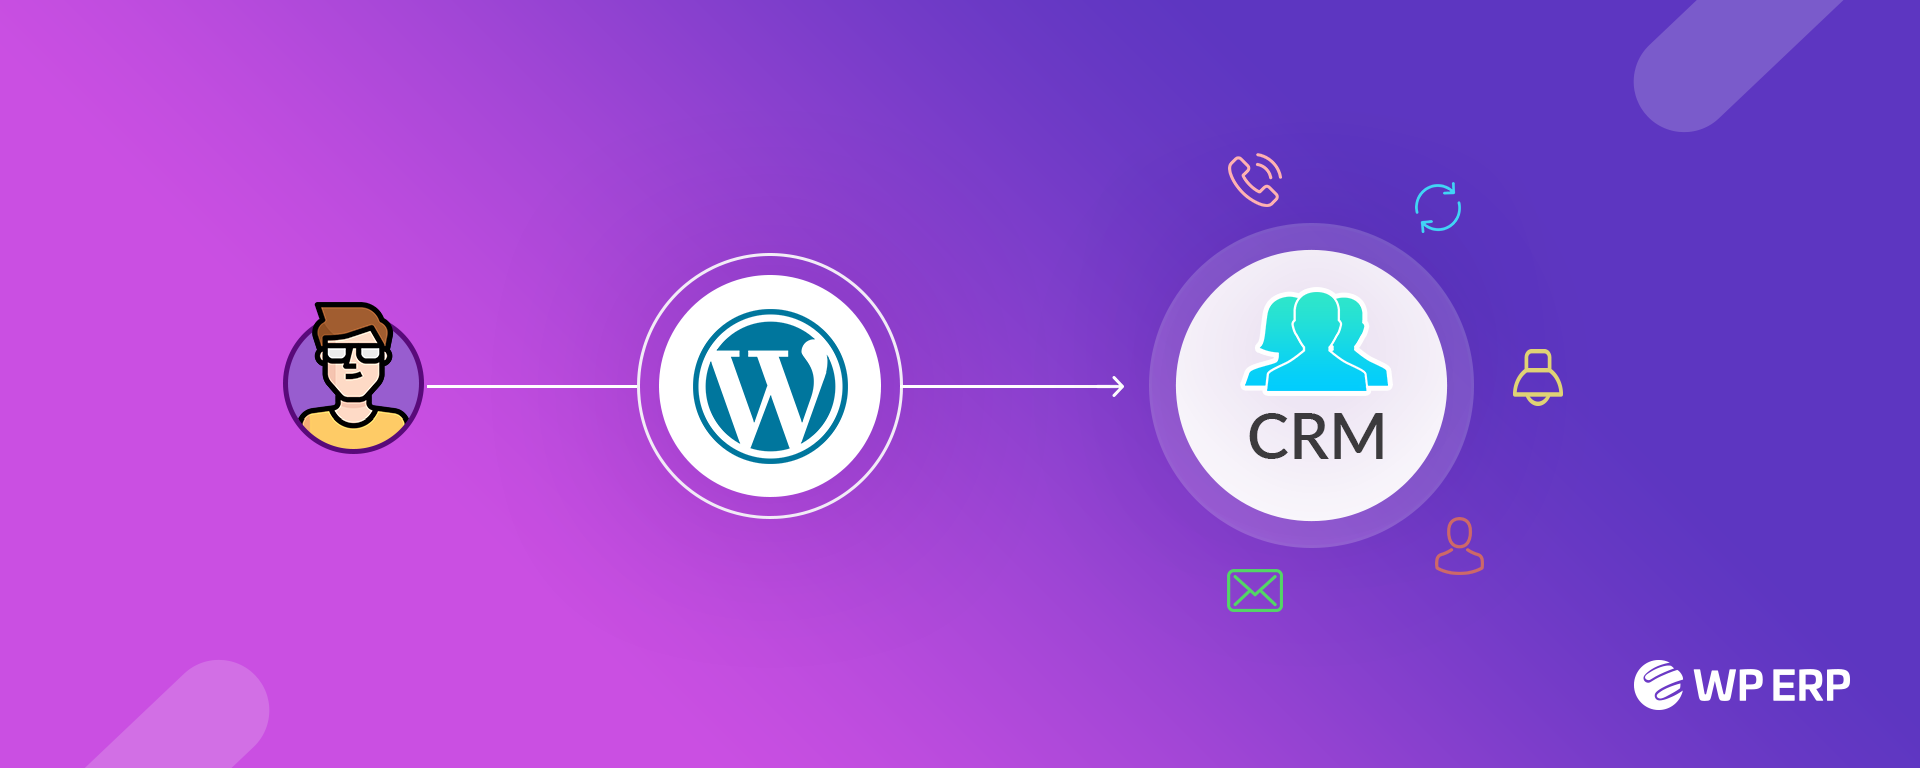 WP ERP Turns your WordPress site into a simple CRM for free